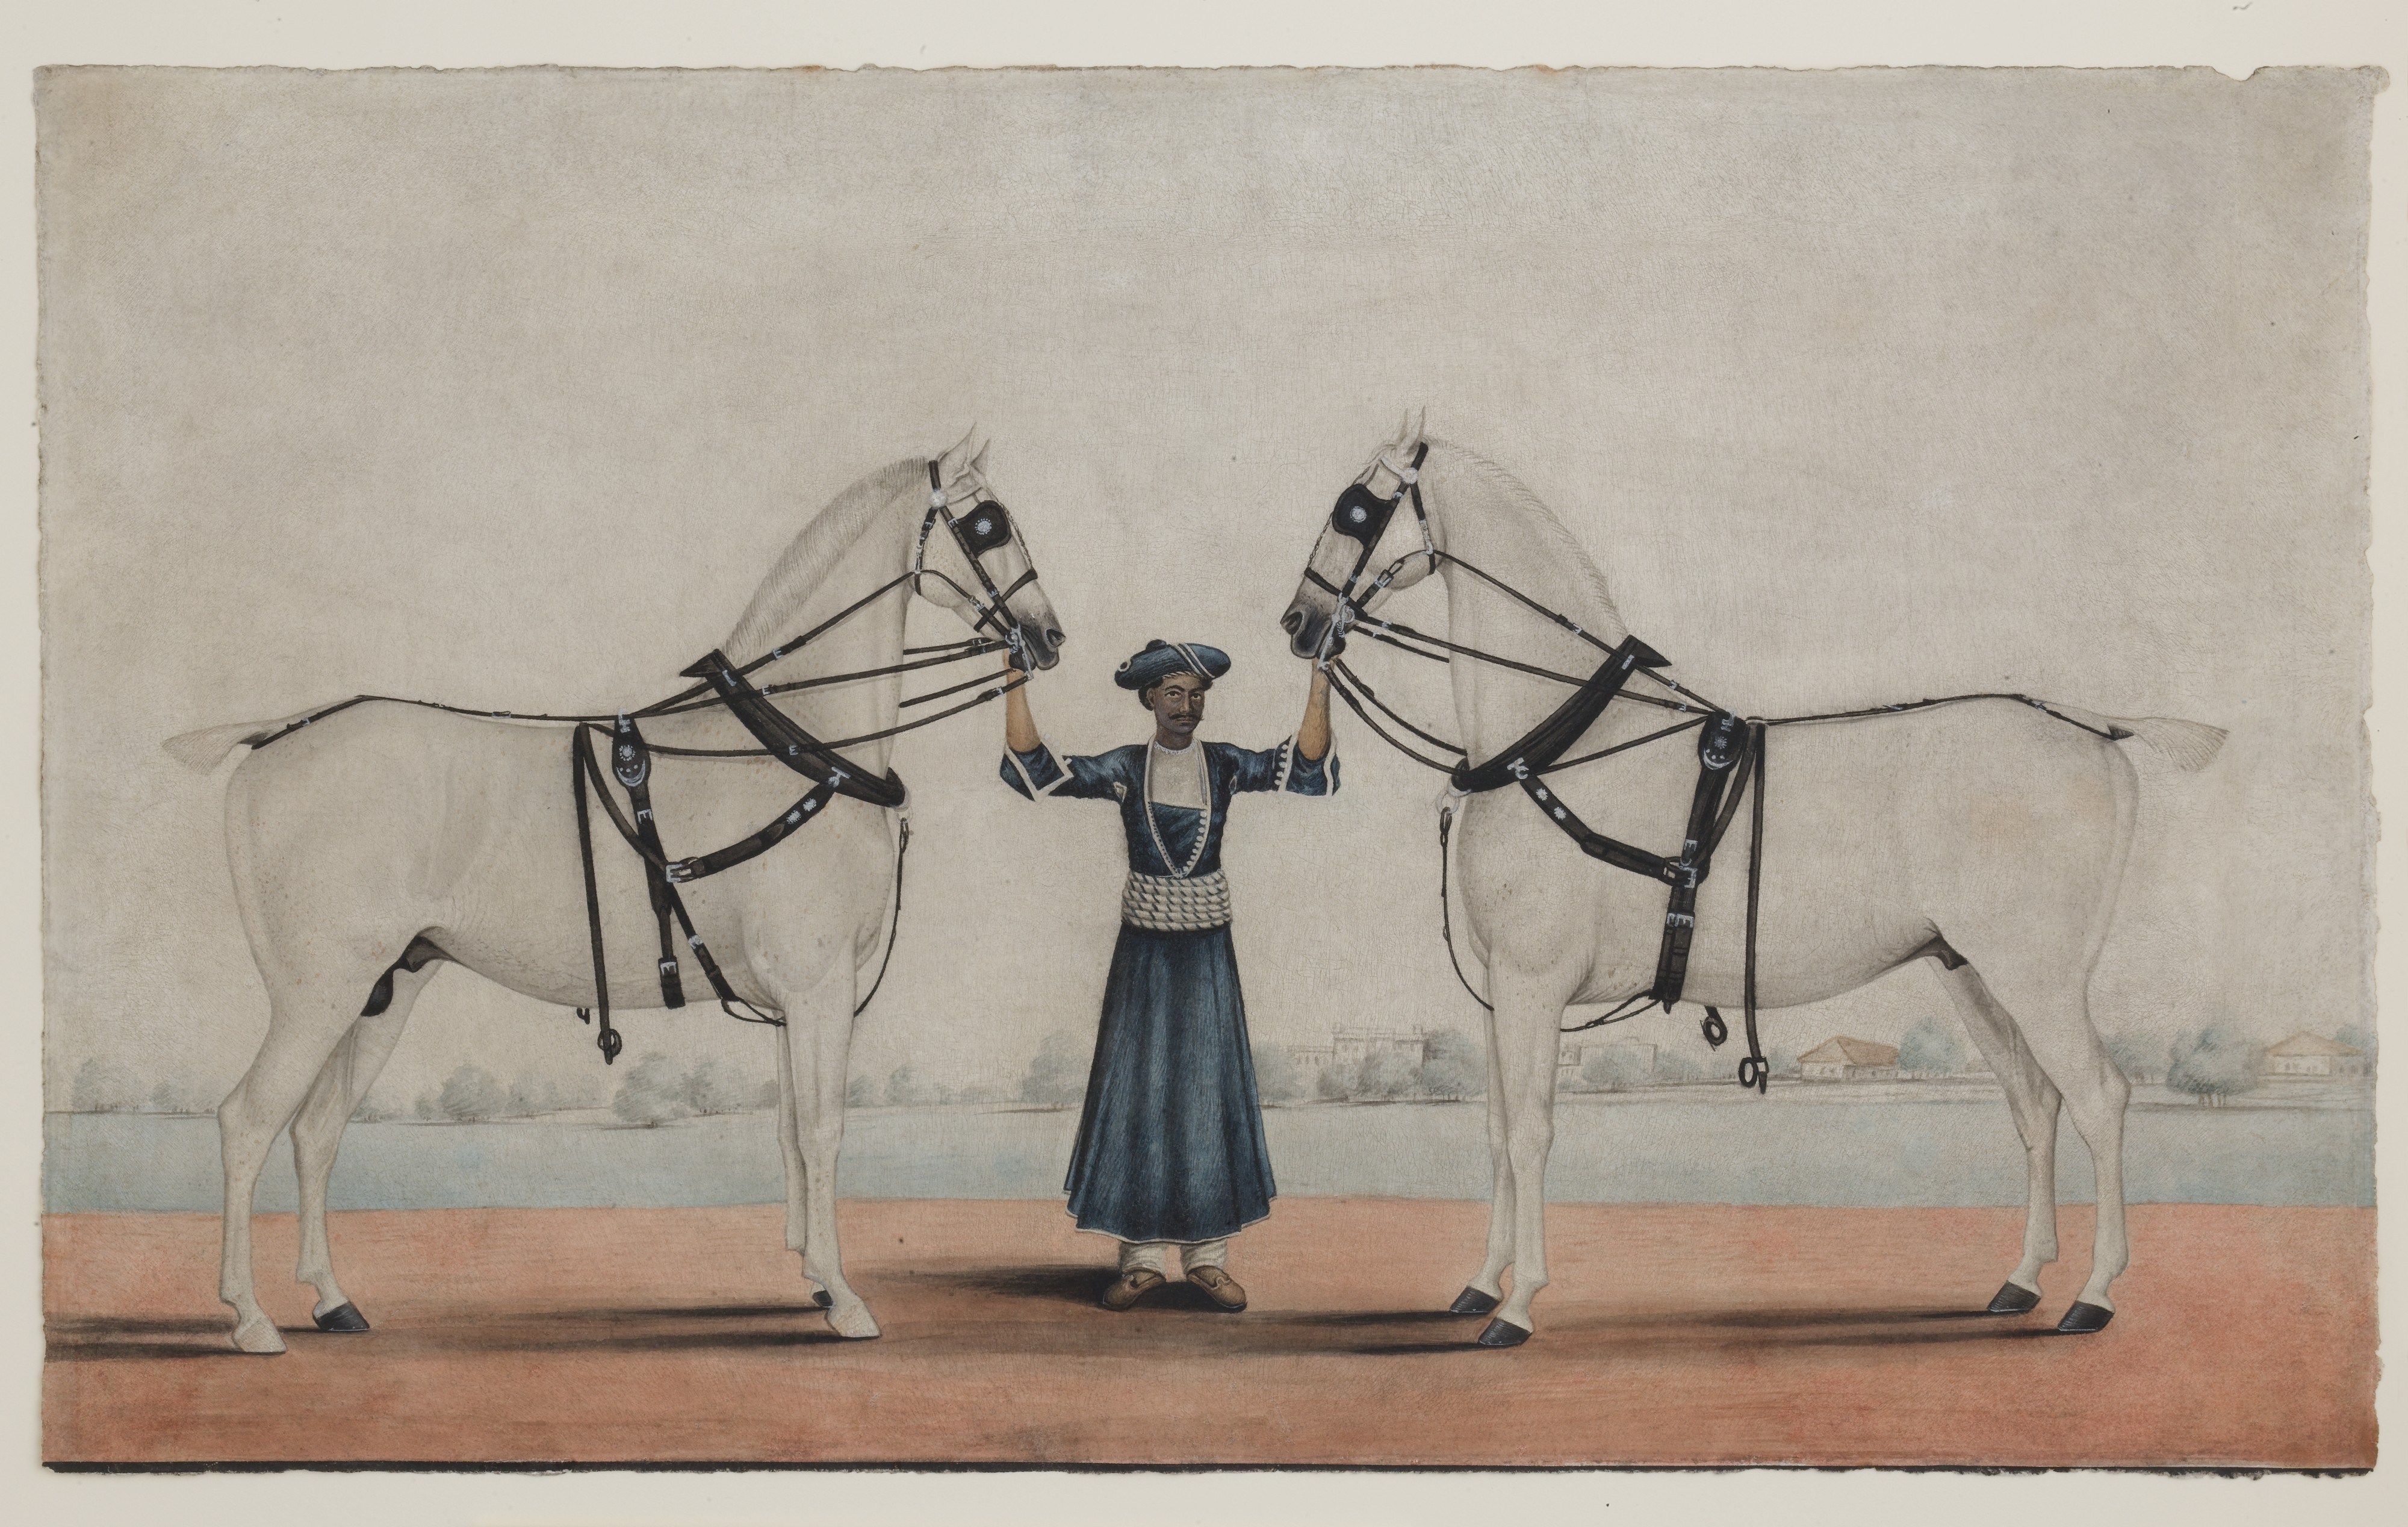 Attributed To Shaikh Muhammad Amir Of Karraya A Syce Groom Holding Two Carriage Horses The Metropolitan Museum Of Art